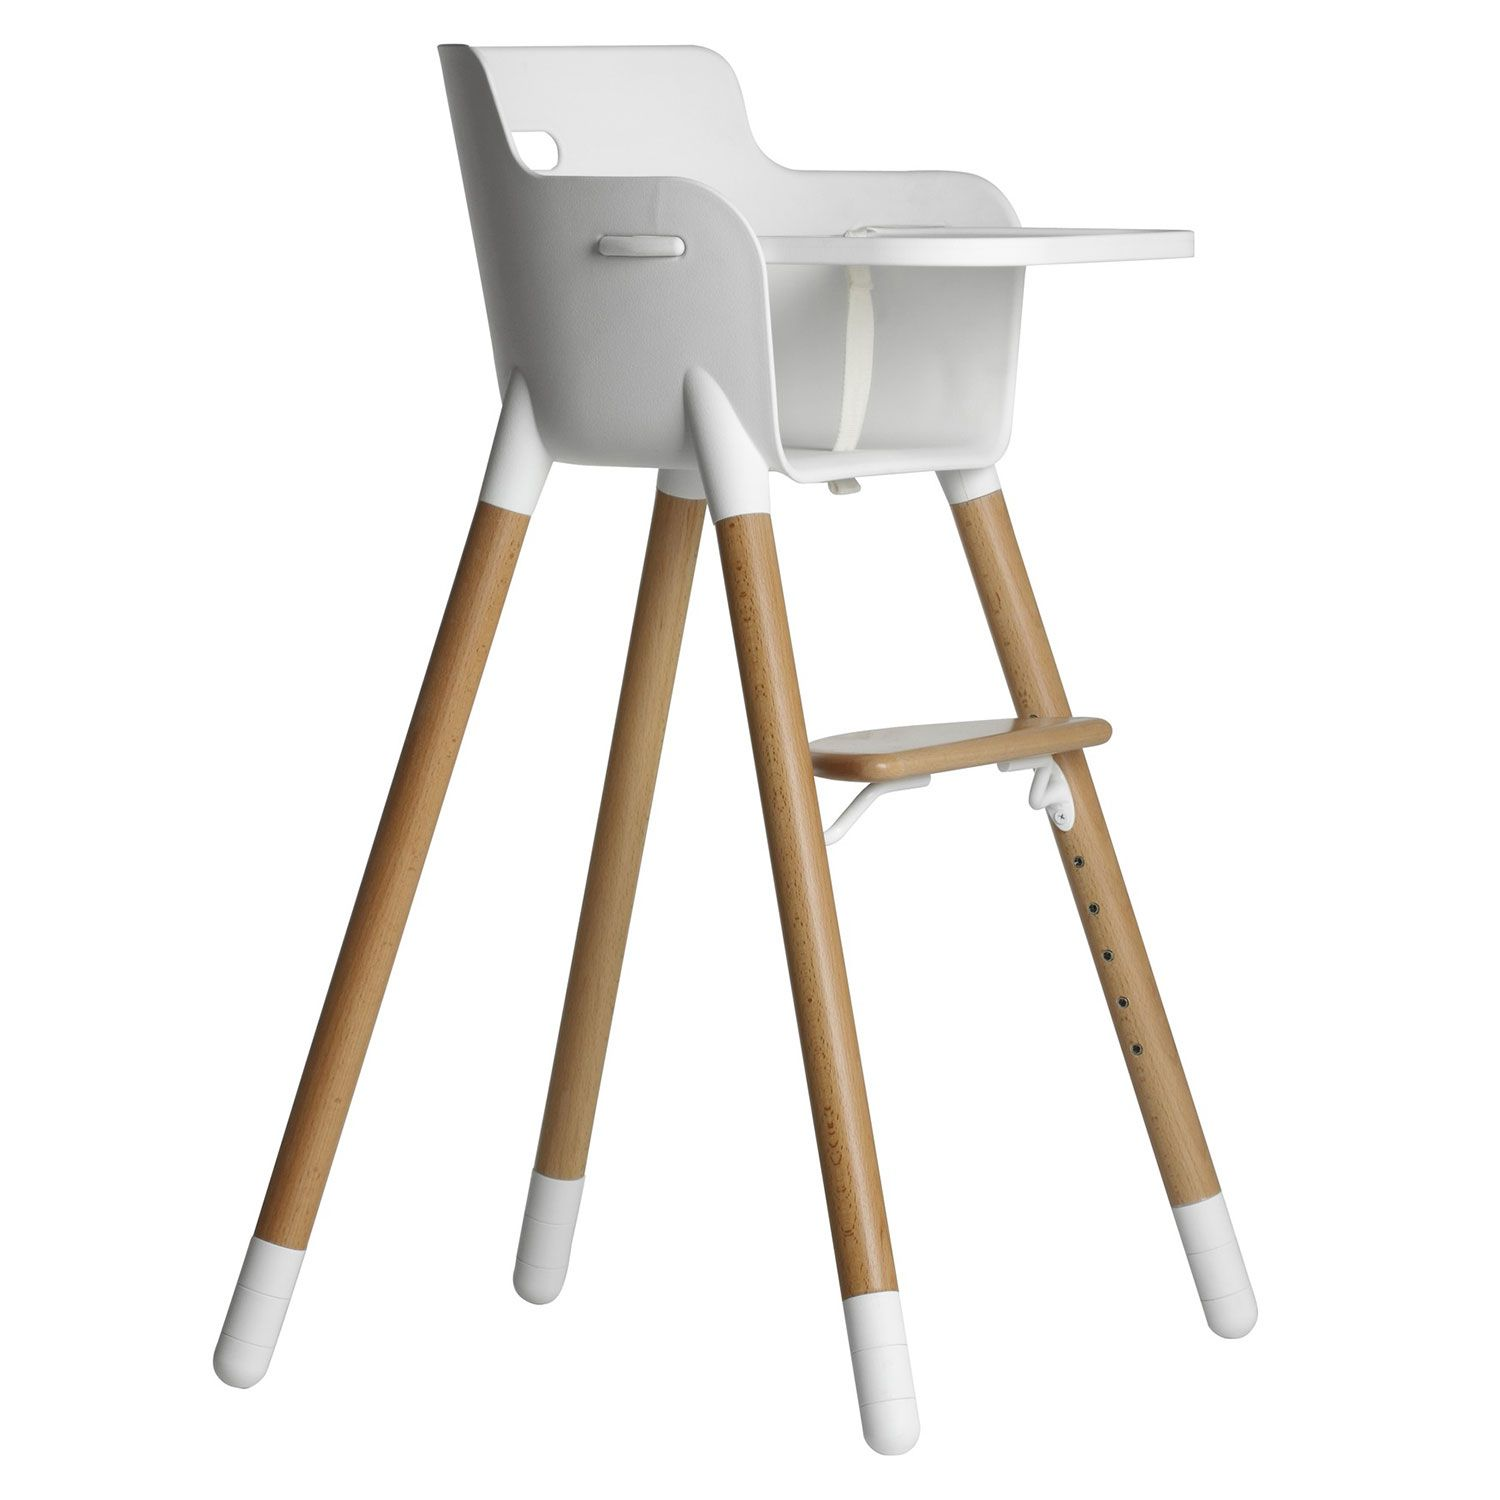 Chairs For Babies Our Selection Of High Chair Gt Https Shanael